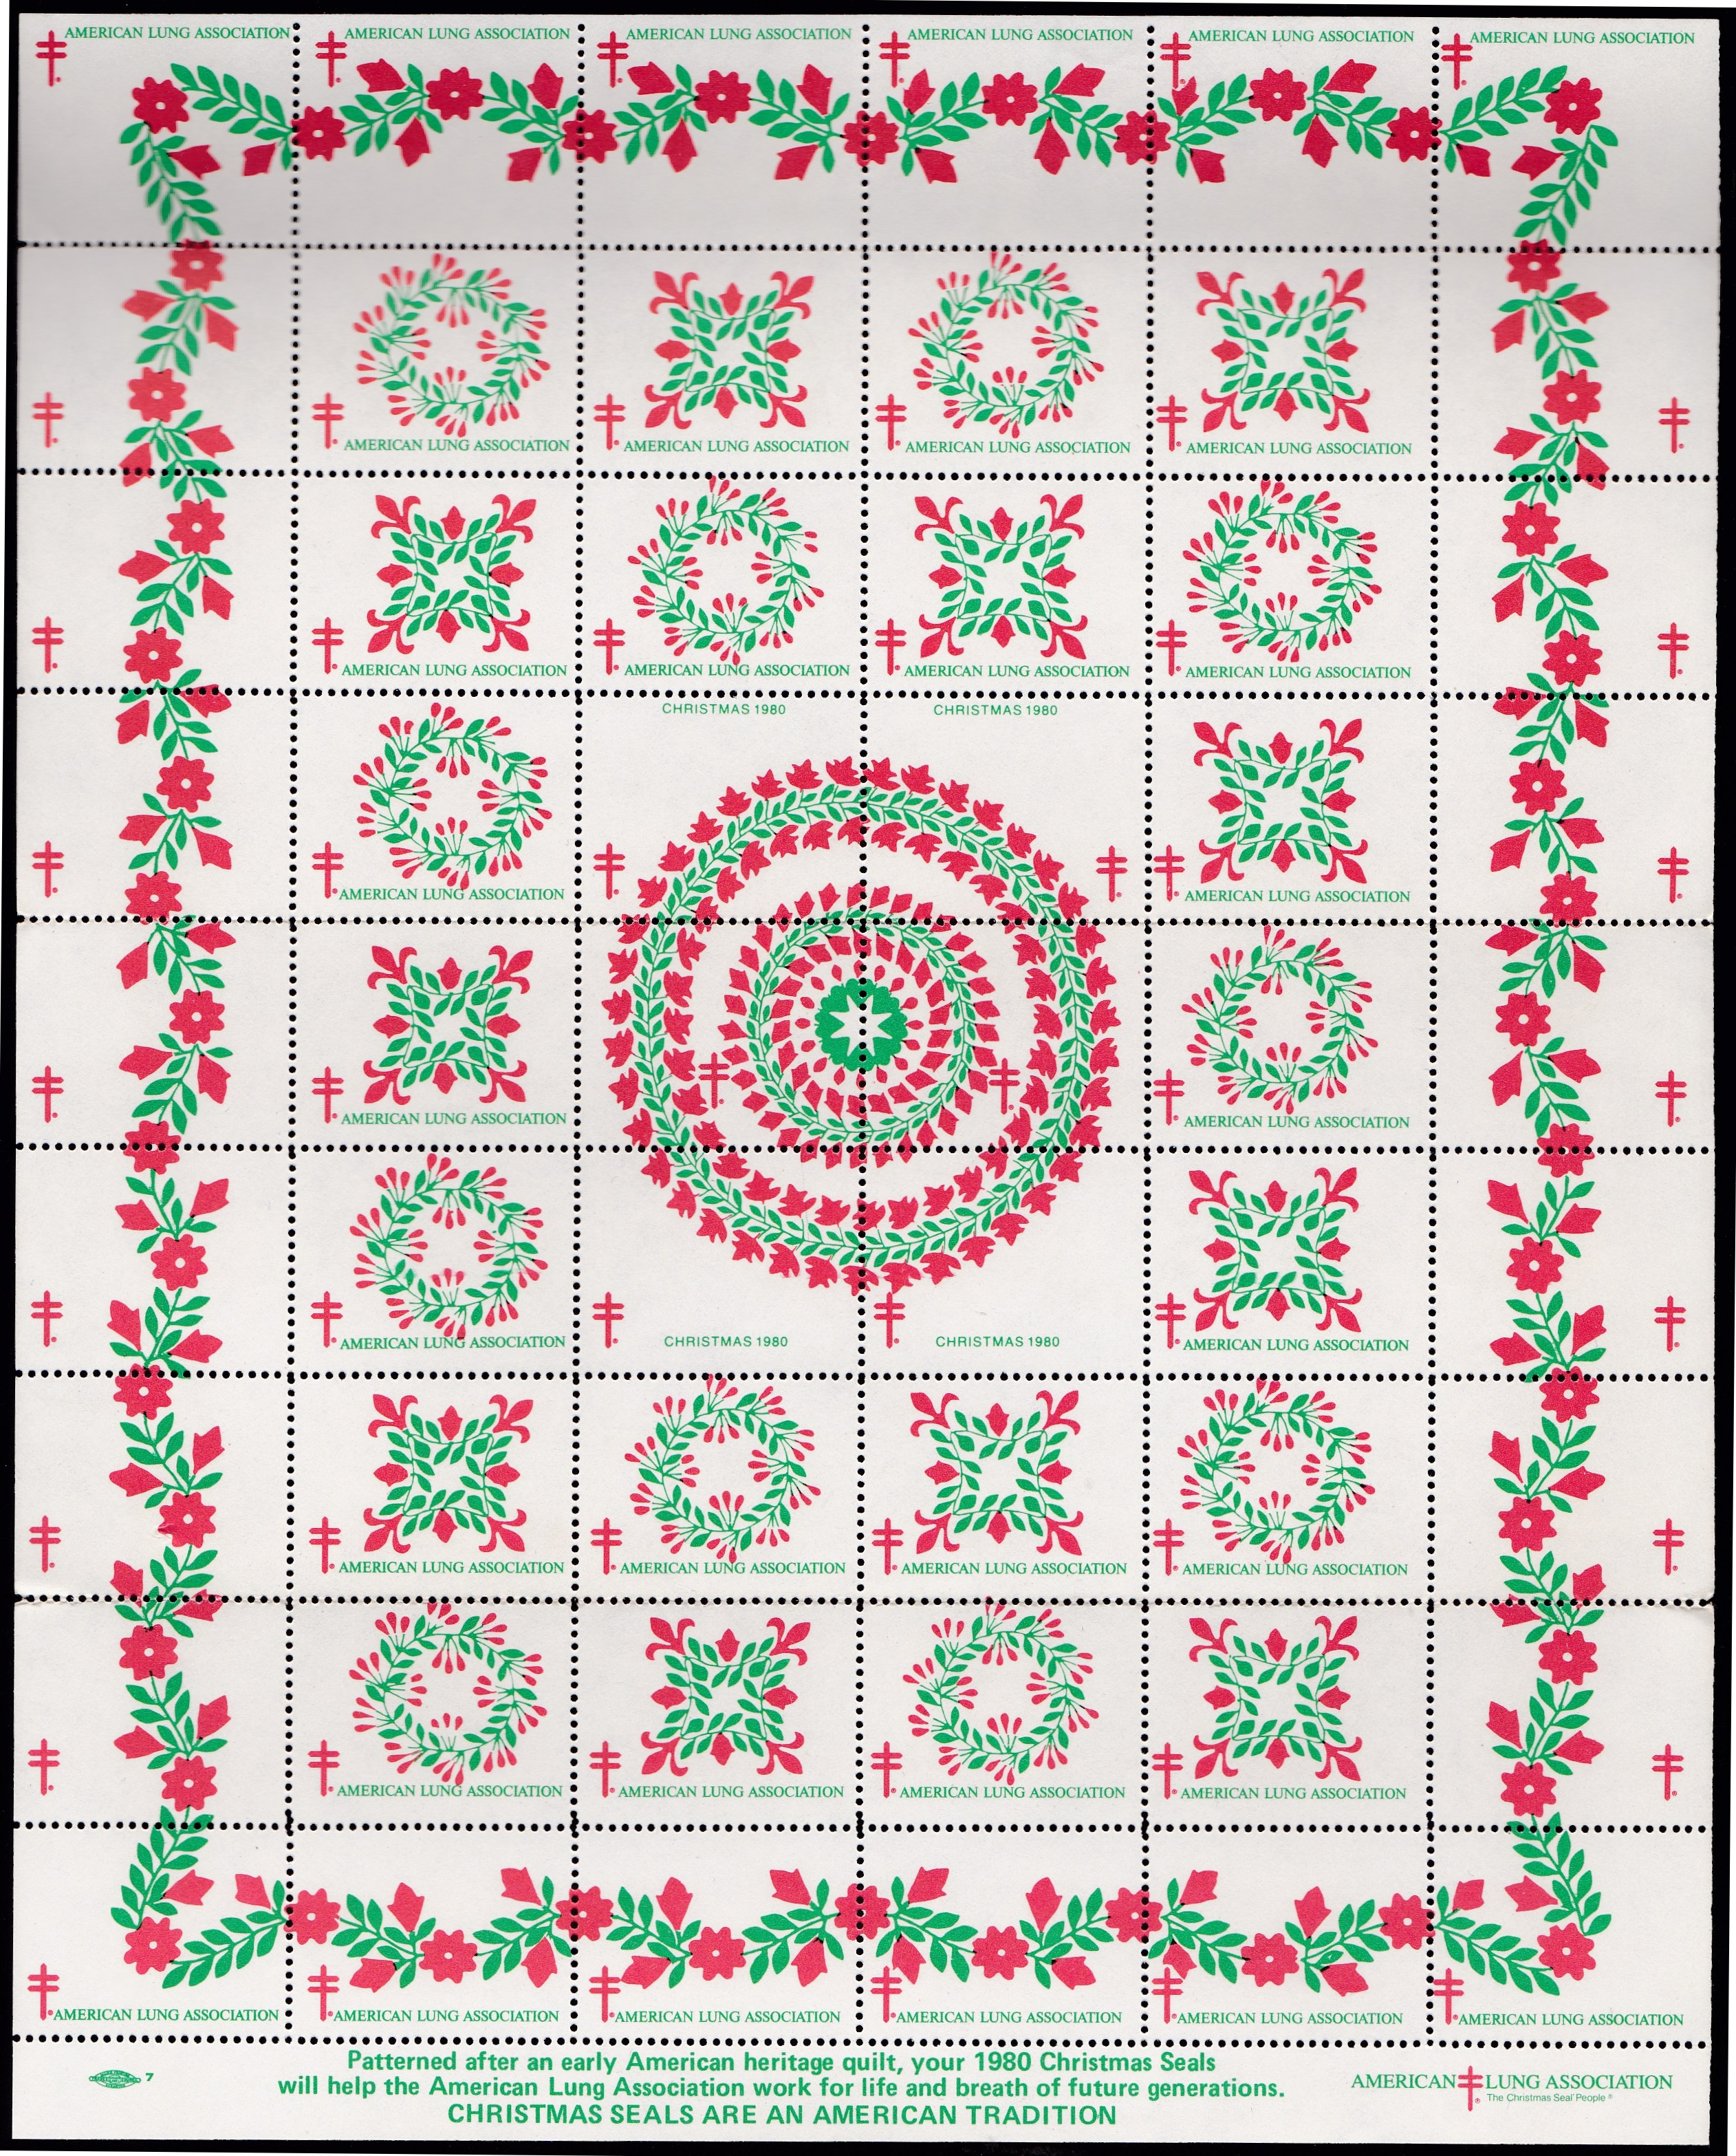 1980 Christmas Seal Quilt Design Experiment